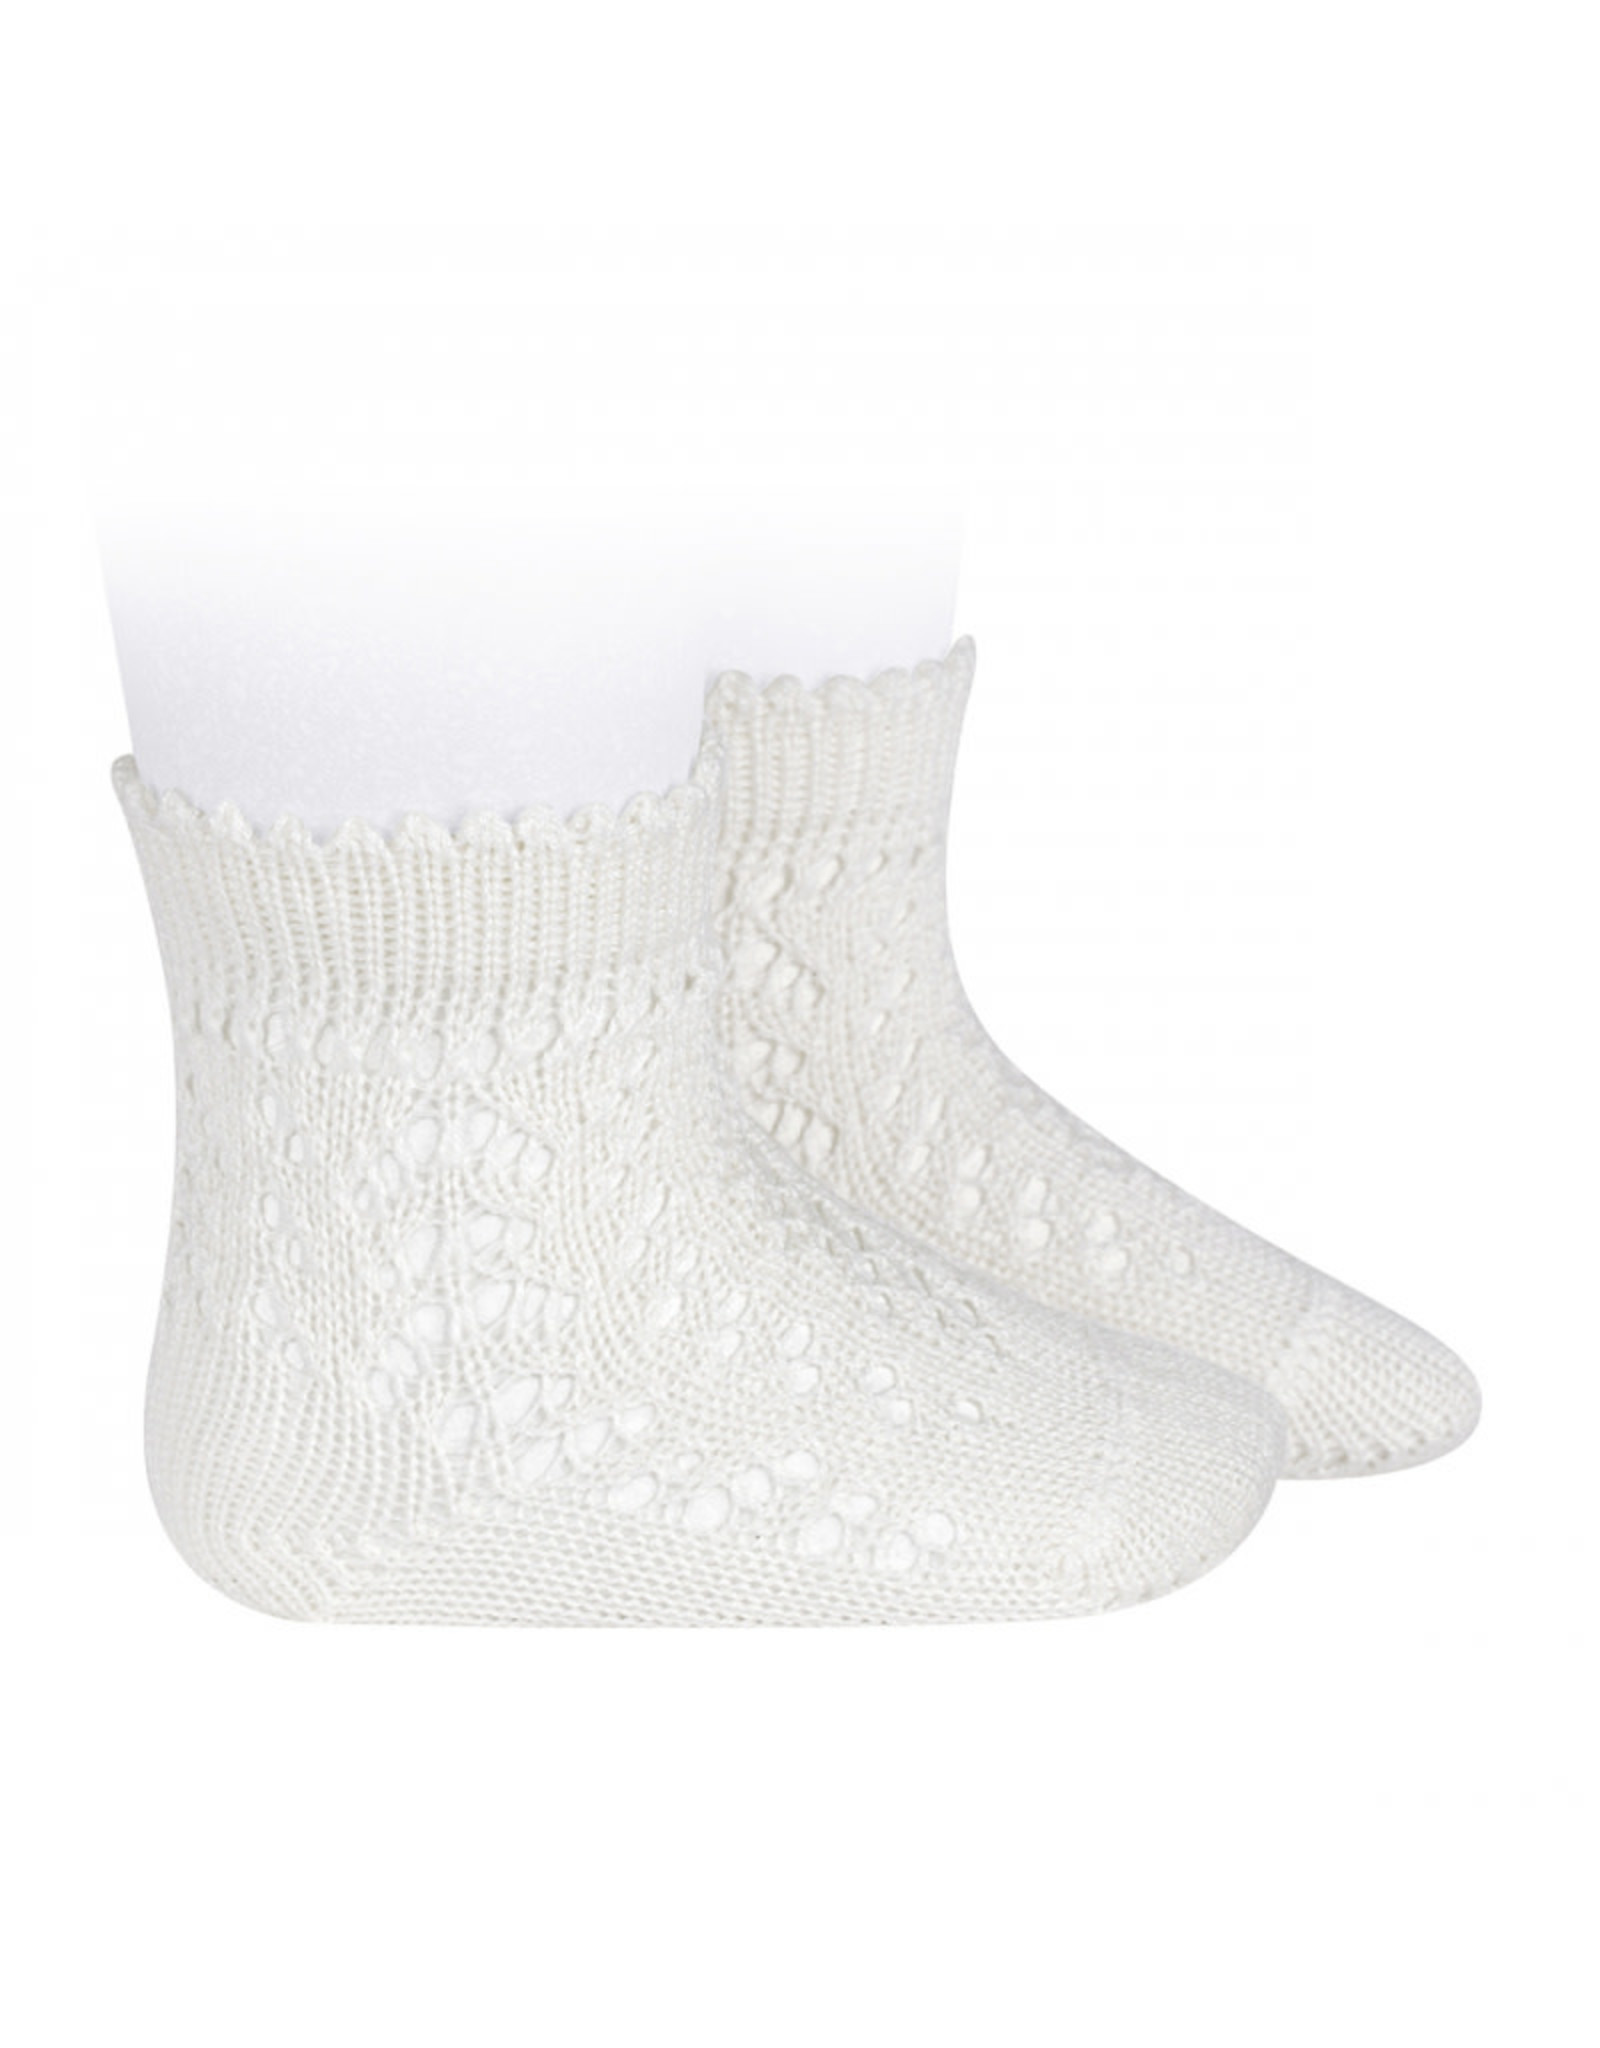 CONDOR Cream Openwork Short Socks